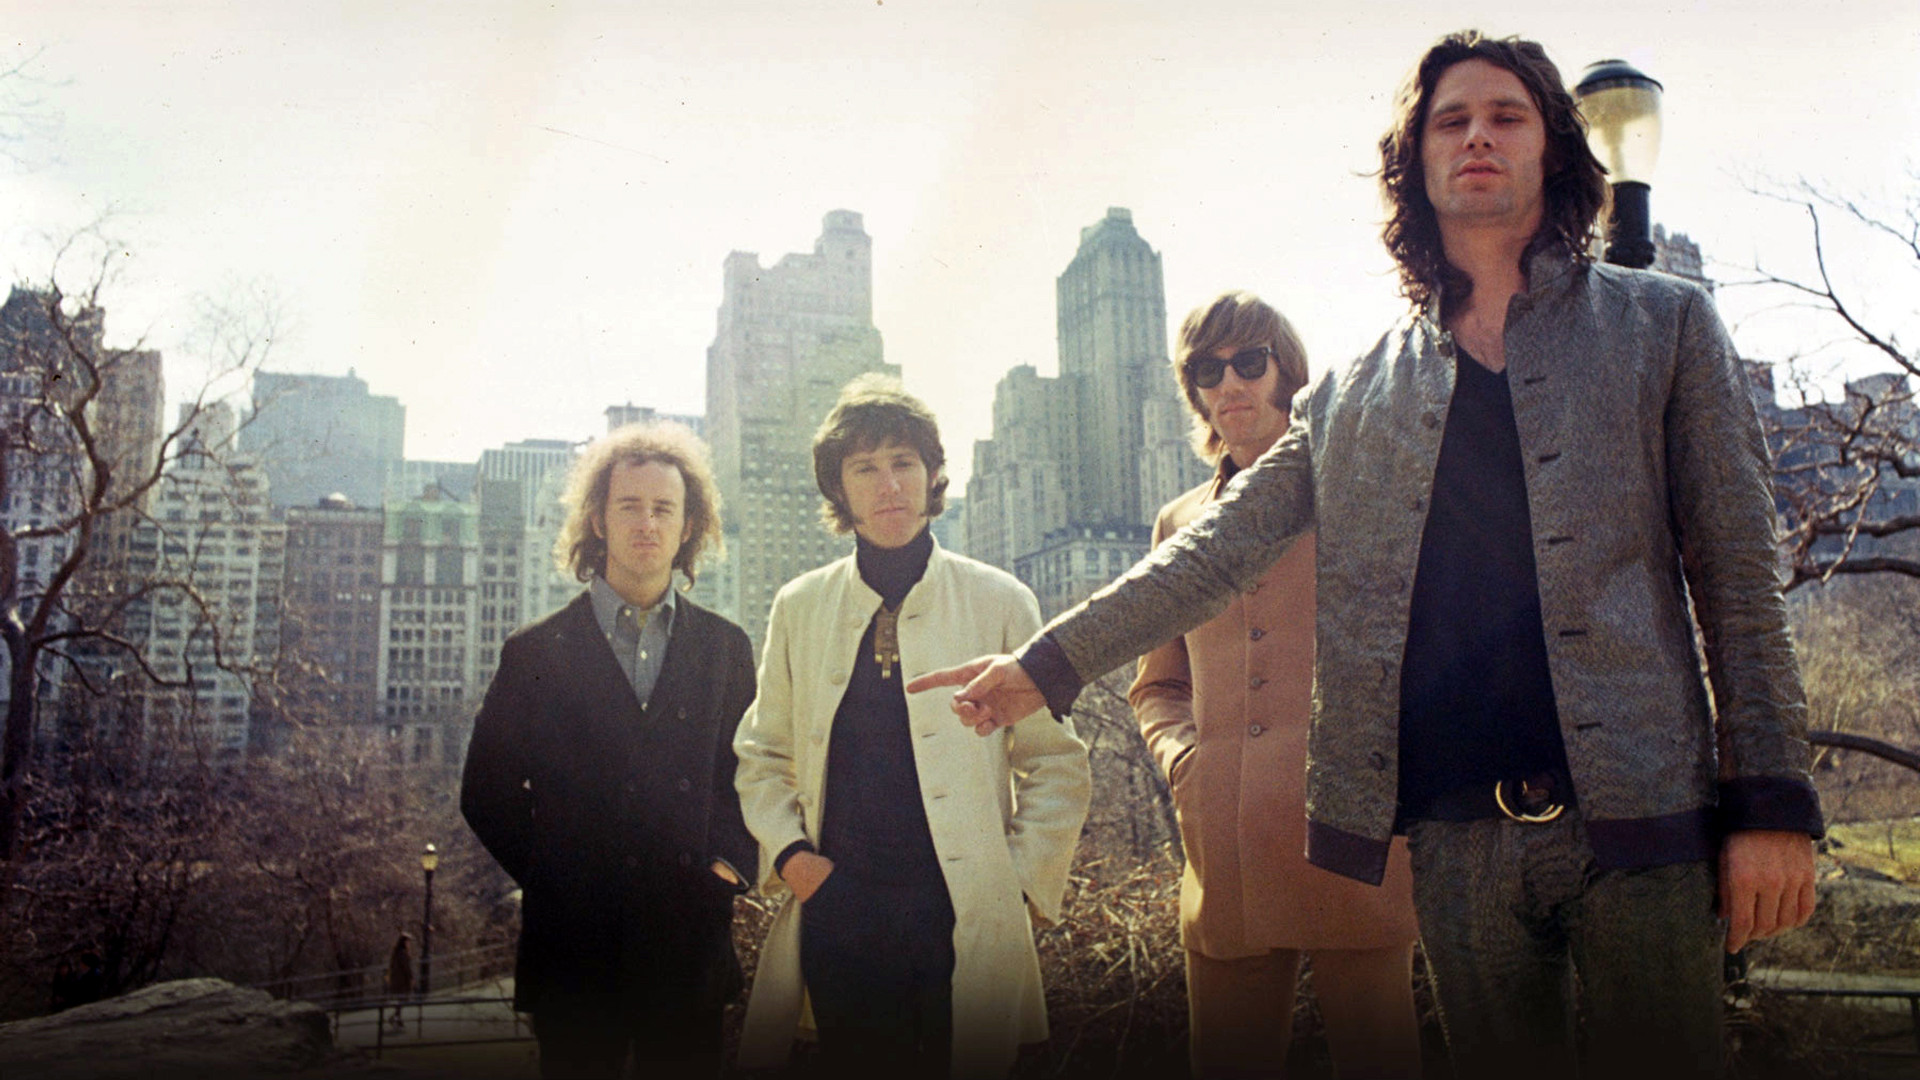 The Doors in New York City - Wallpaper [1920x1080] : thedoors